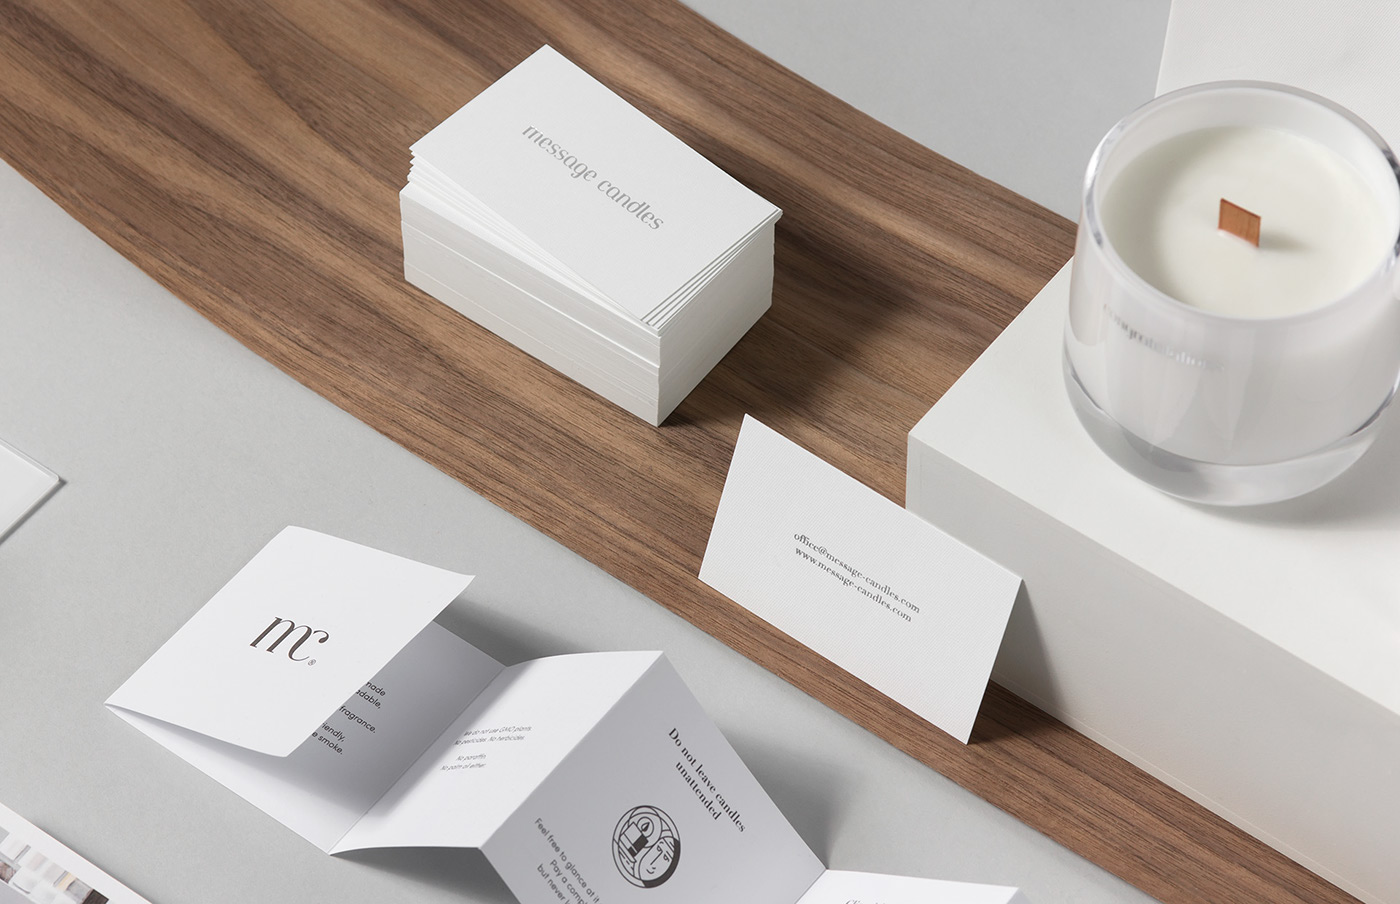 message candles on Behance